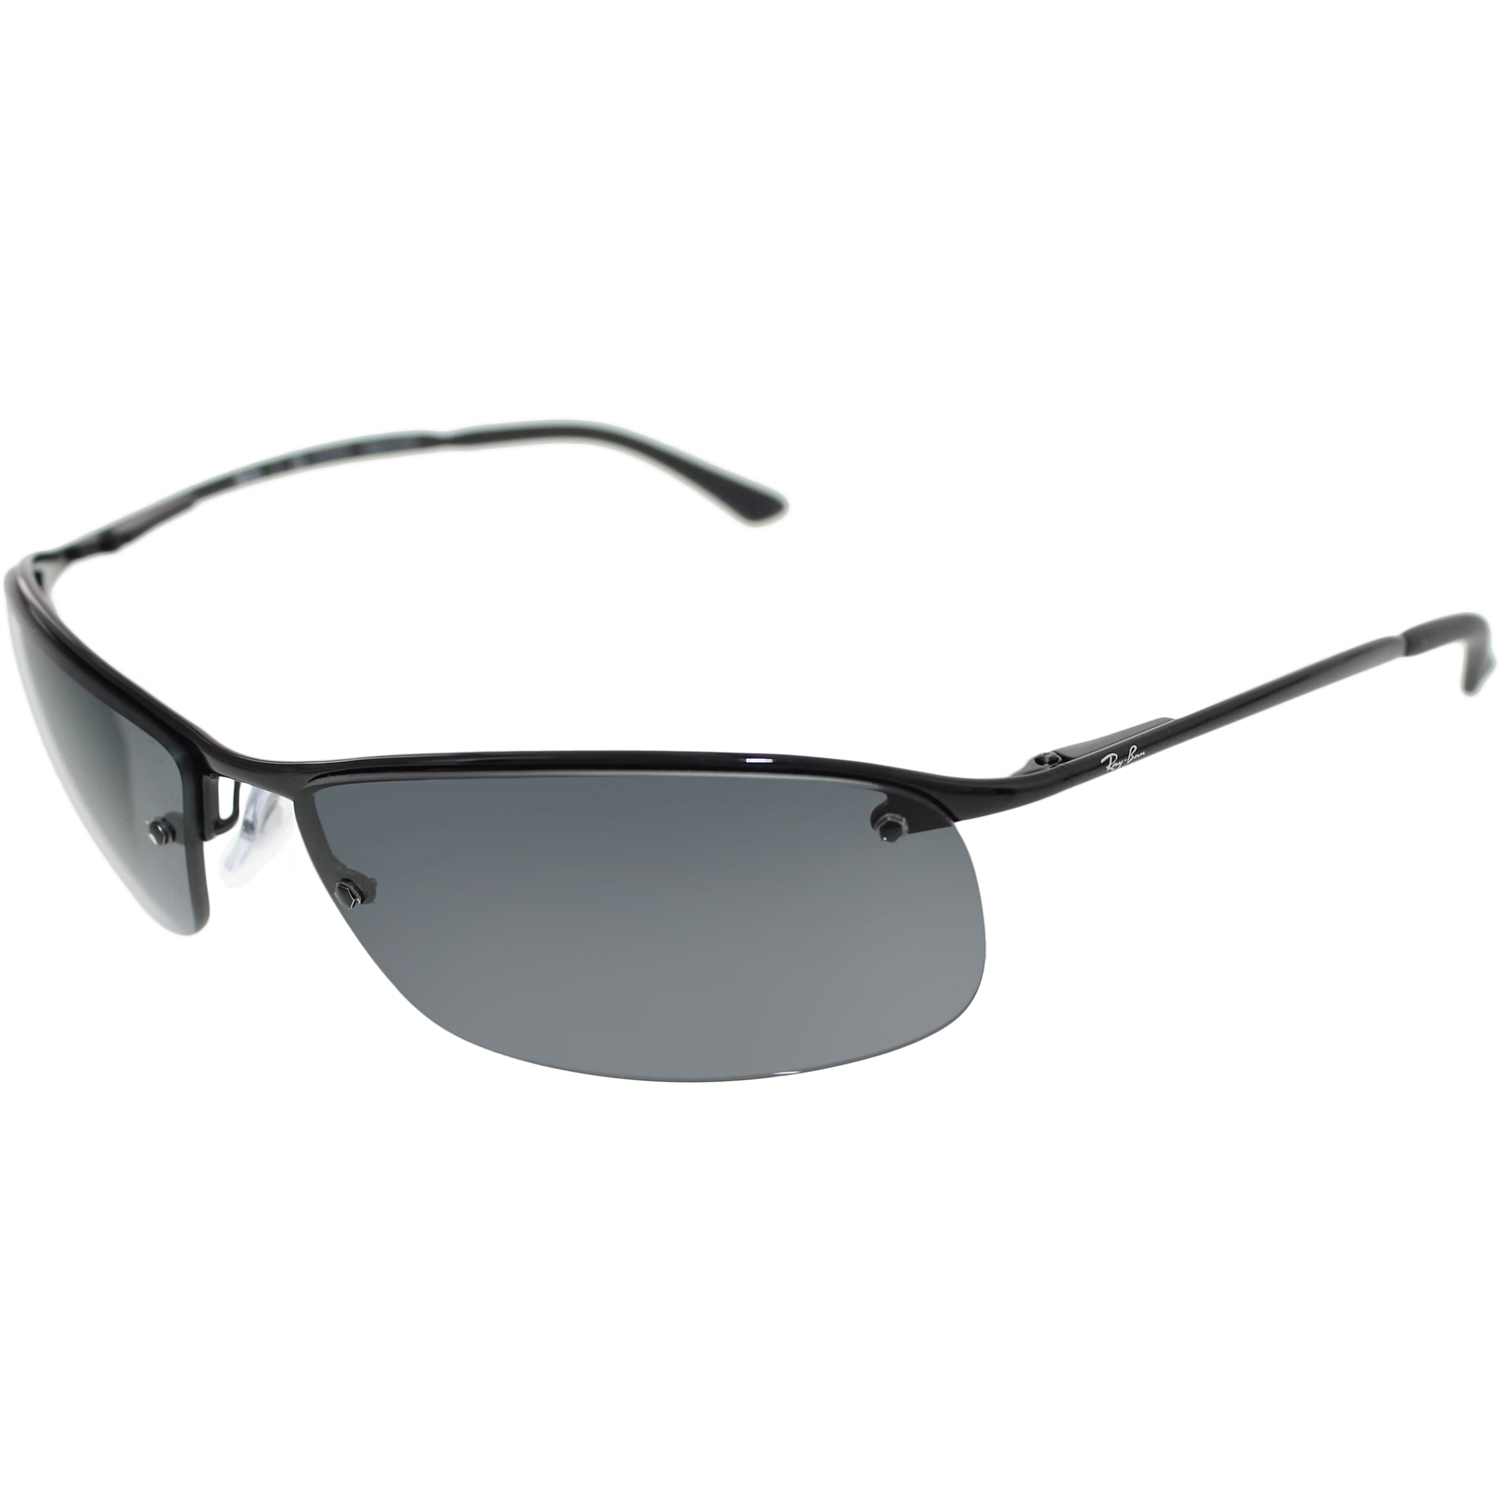 ray ban polarized sunglasses walmart  ray ban men's polarized rb3183 002/81 63 black semi rimless